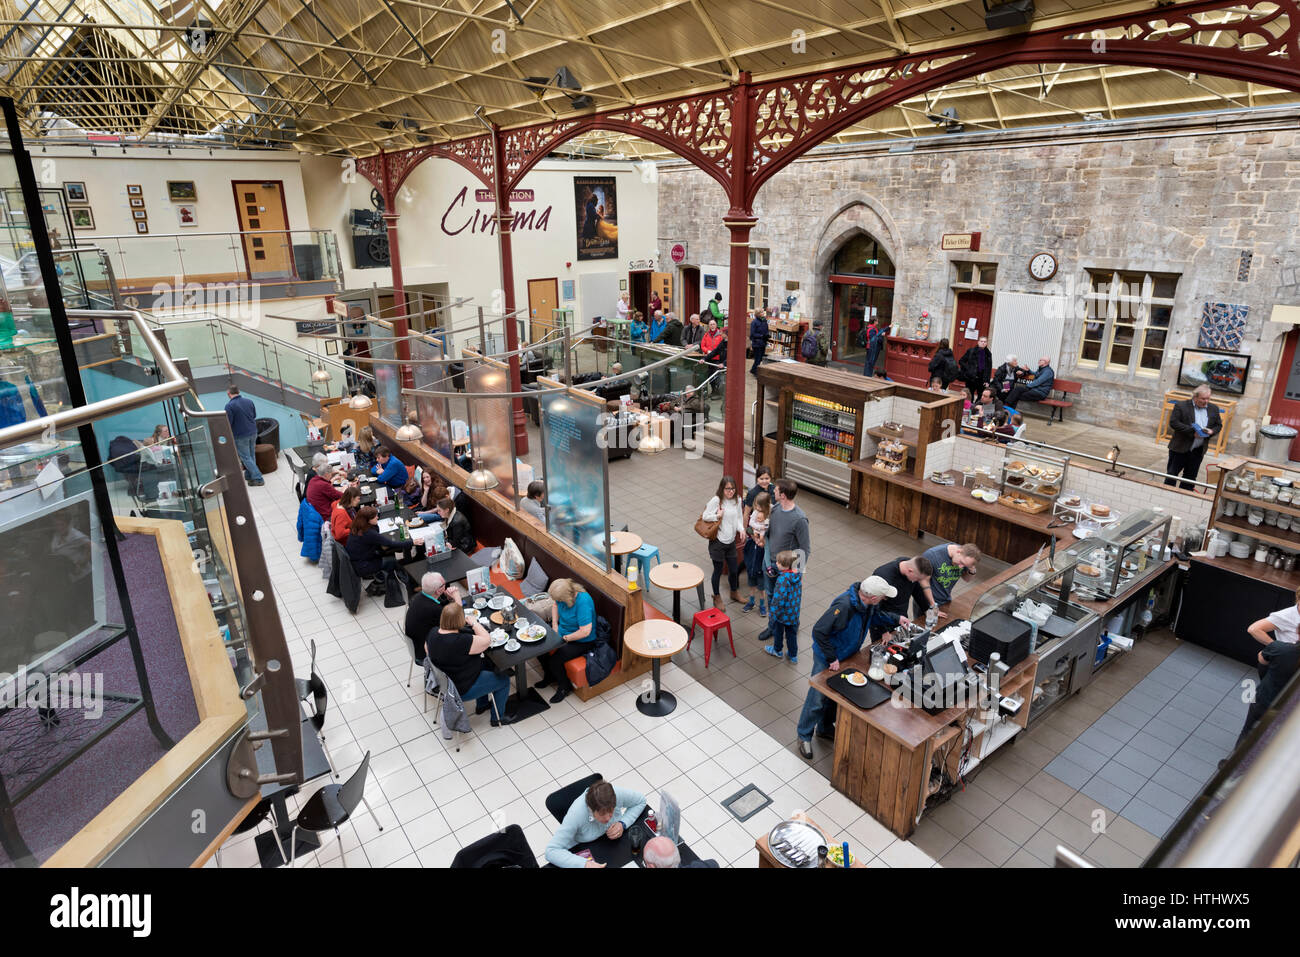 The interior of the former railway station, now a retail and entertainment complex, Richmond, North Yorkshire, UK Stock Photo